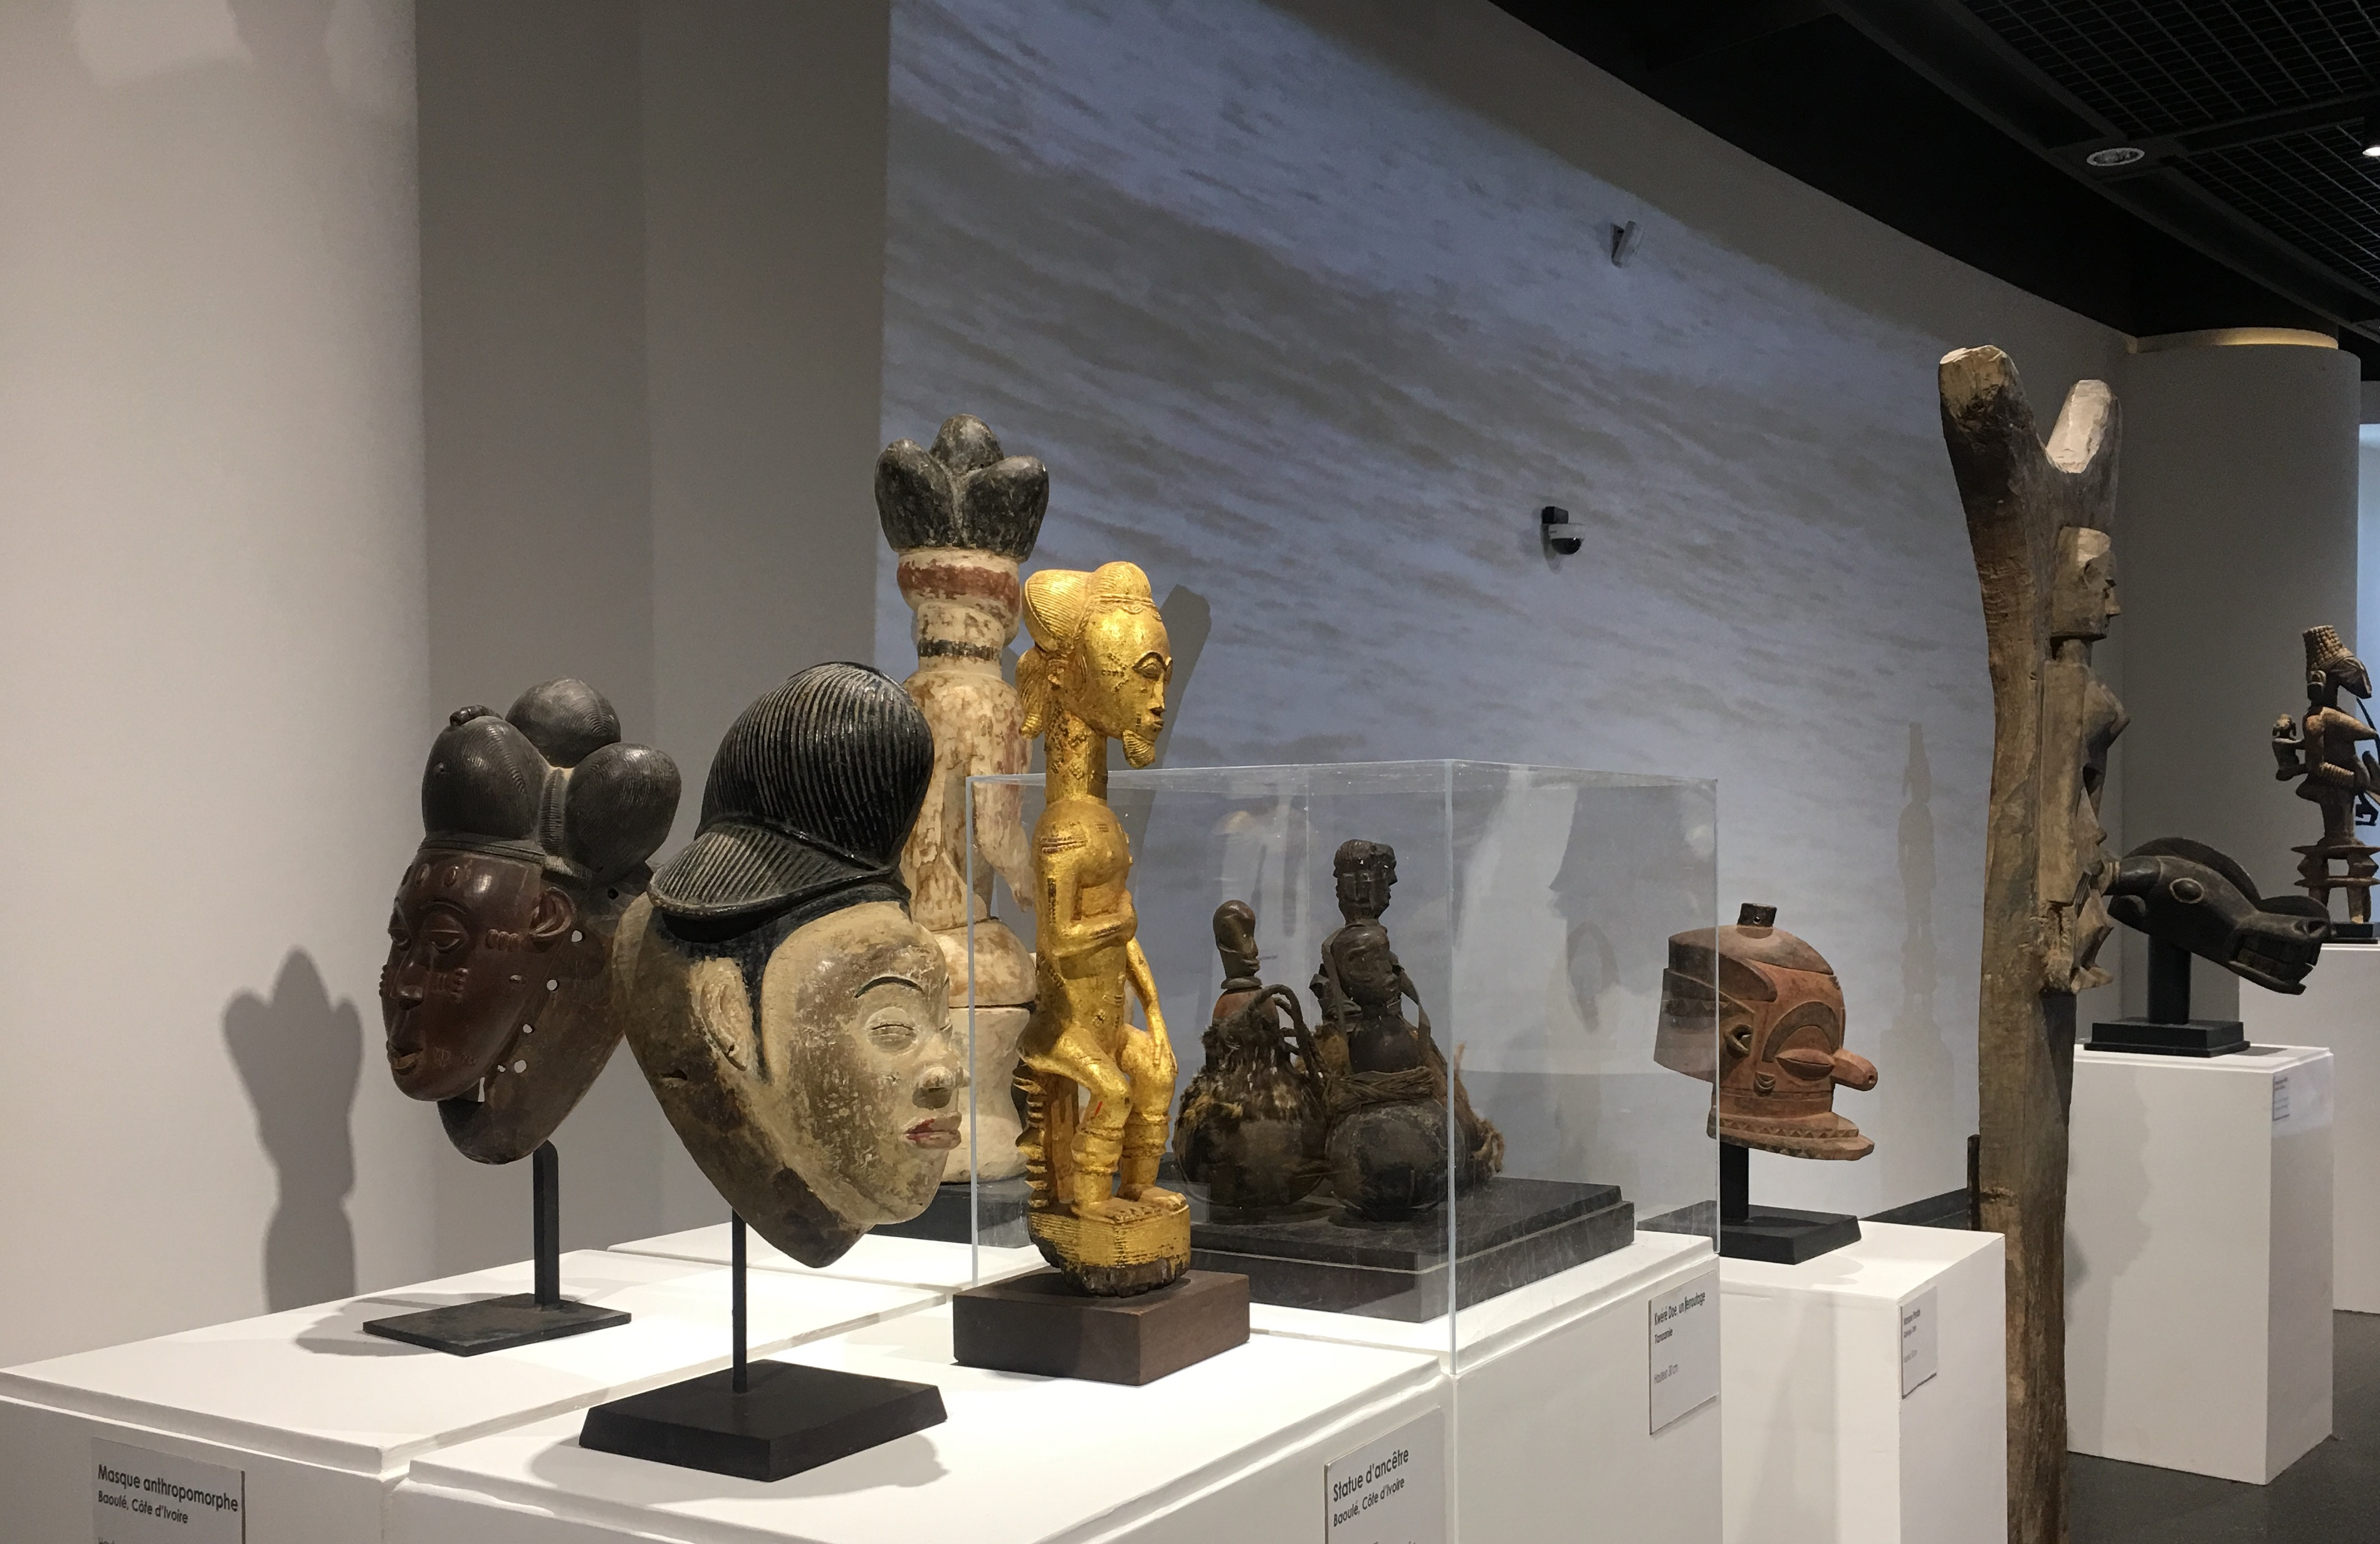 Exhibition at the Museum of Black Civilisations. (Photo courtesy of the author, Mamadou Diallo)